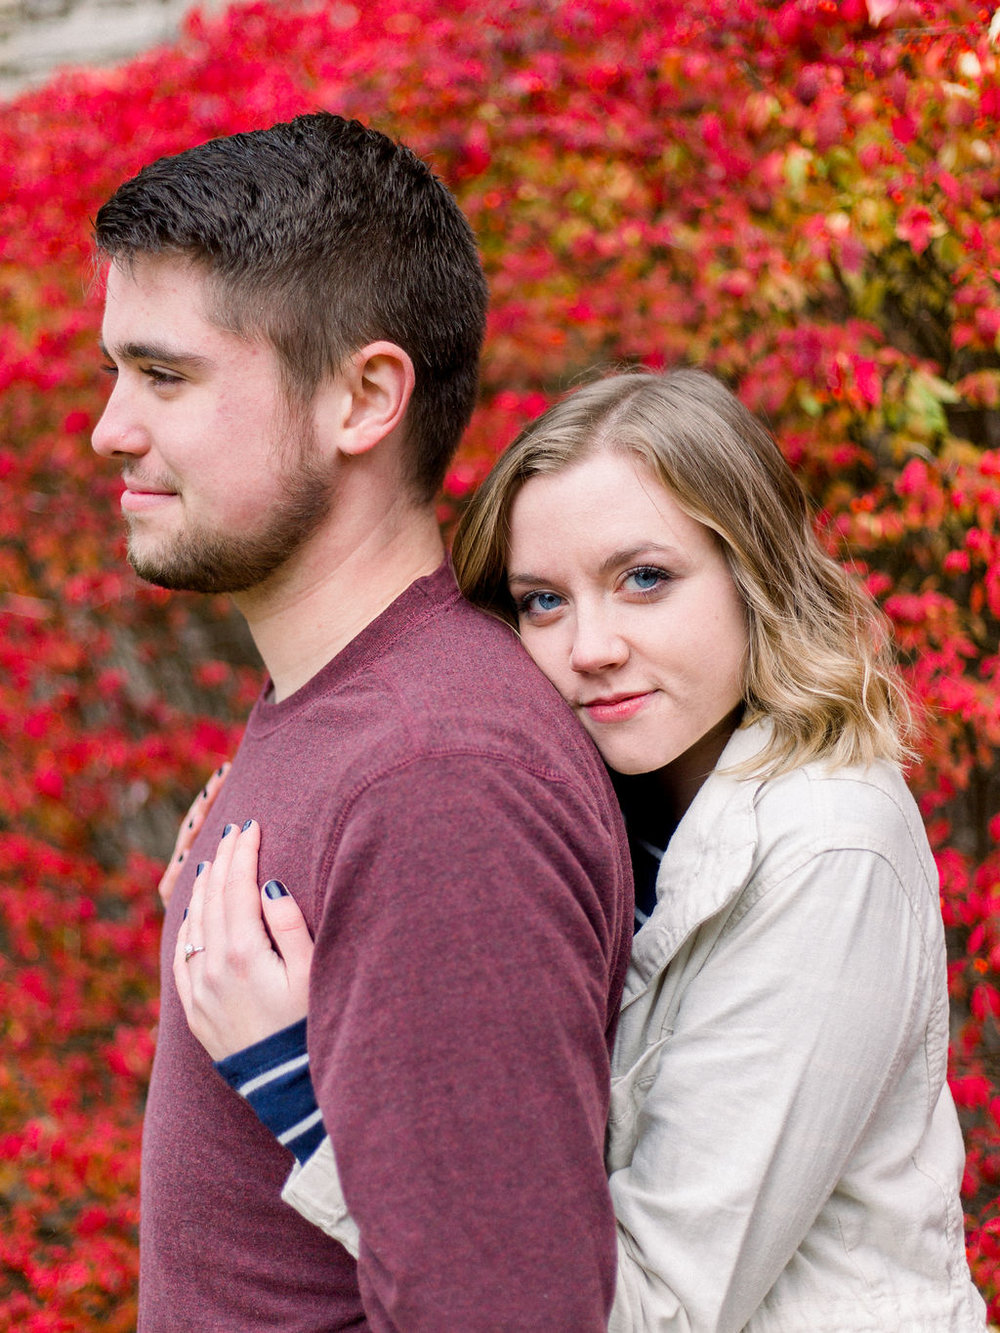 katie_graham_photography_abby_andrew_engagement_houghton_college_bemus_point_new_york_wedding_photographer.jpg